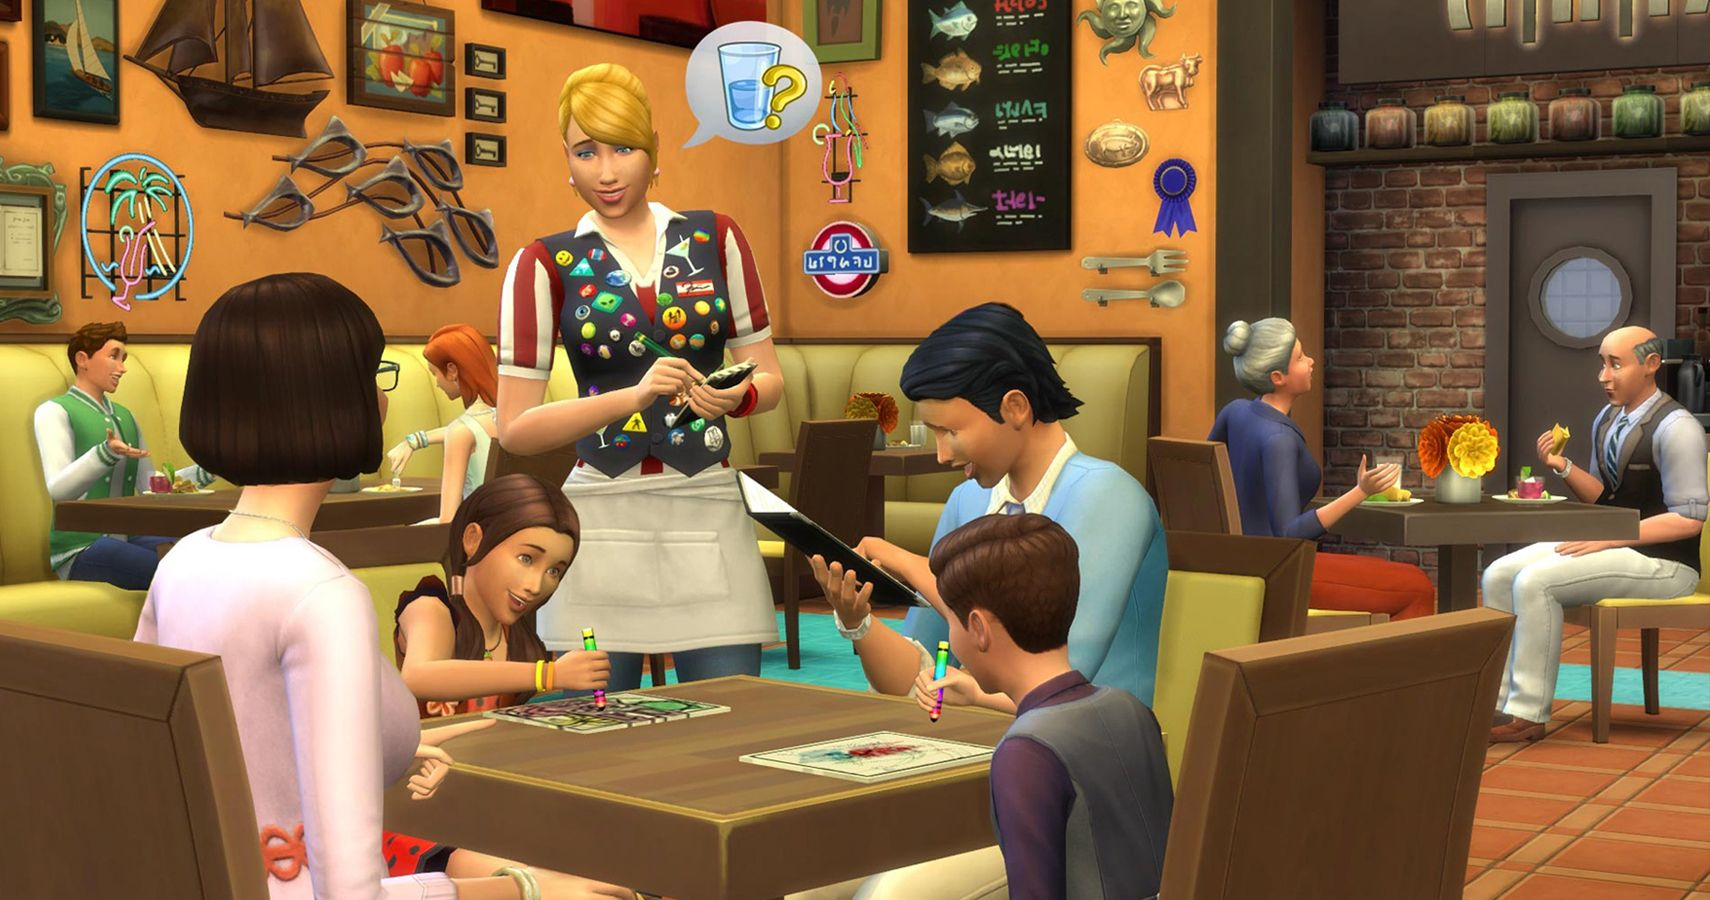 The Sims 4: 25 Tricks From The Game Casual Fans Have No Idea